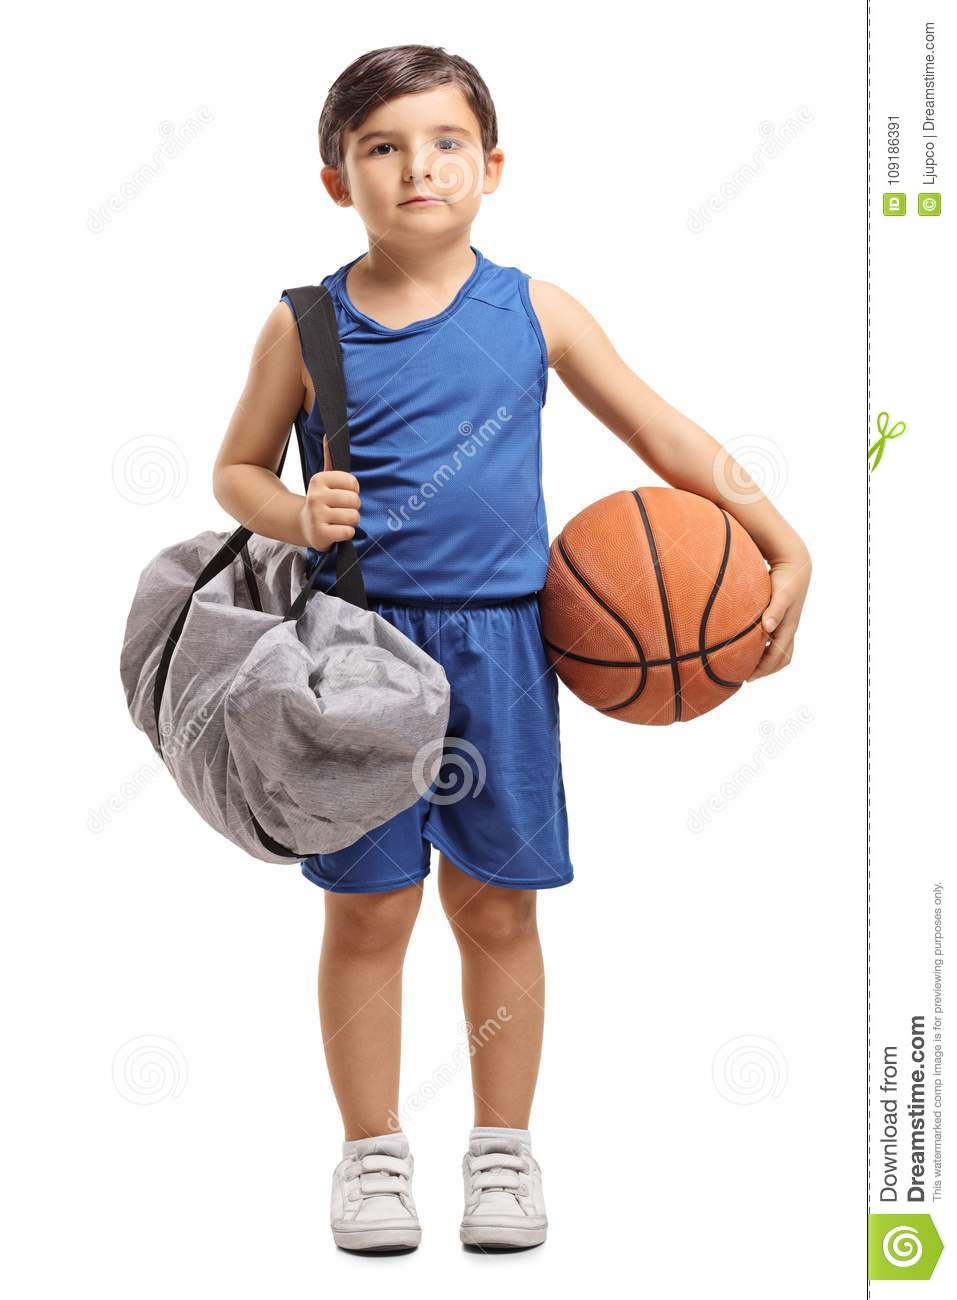 3a283e960cd Full length portrait of a little basketball player holding a sports bag and  a basketball isolated on white background